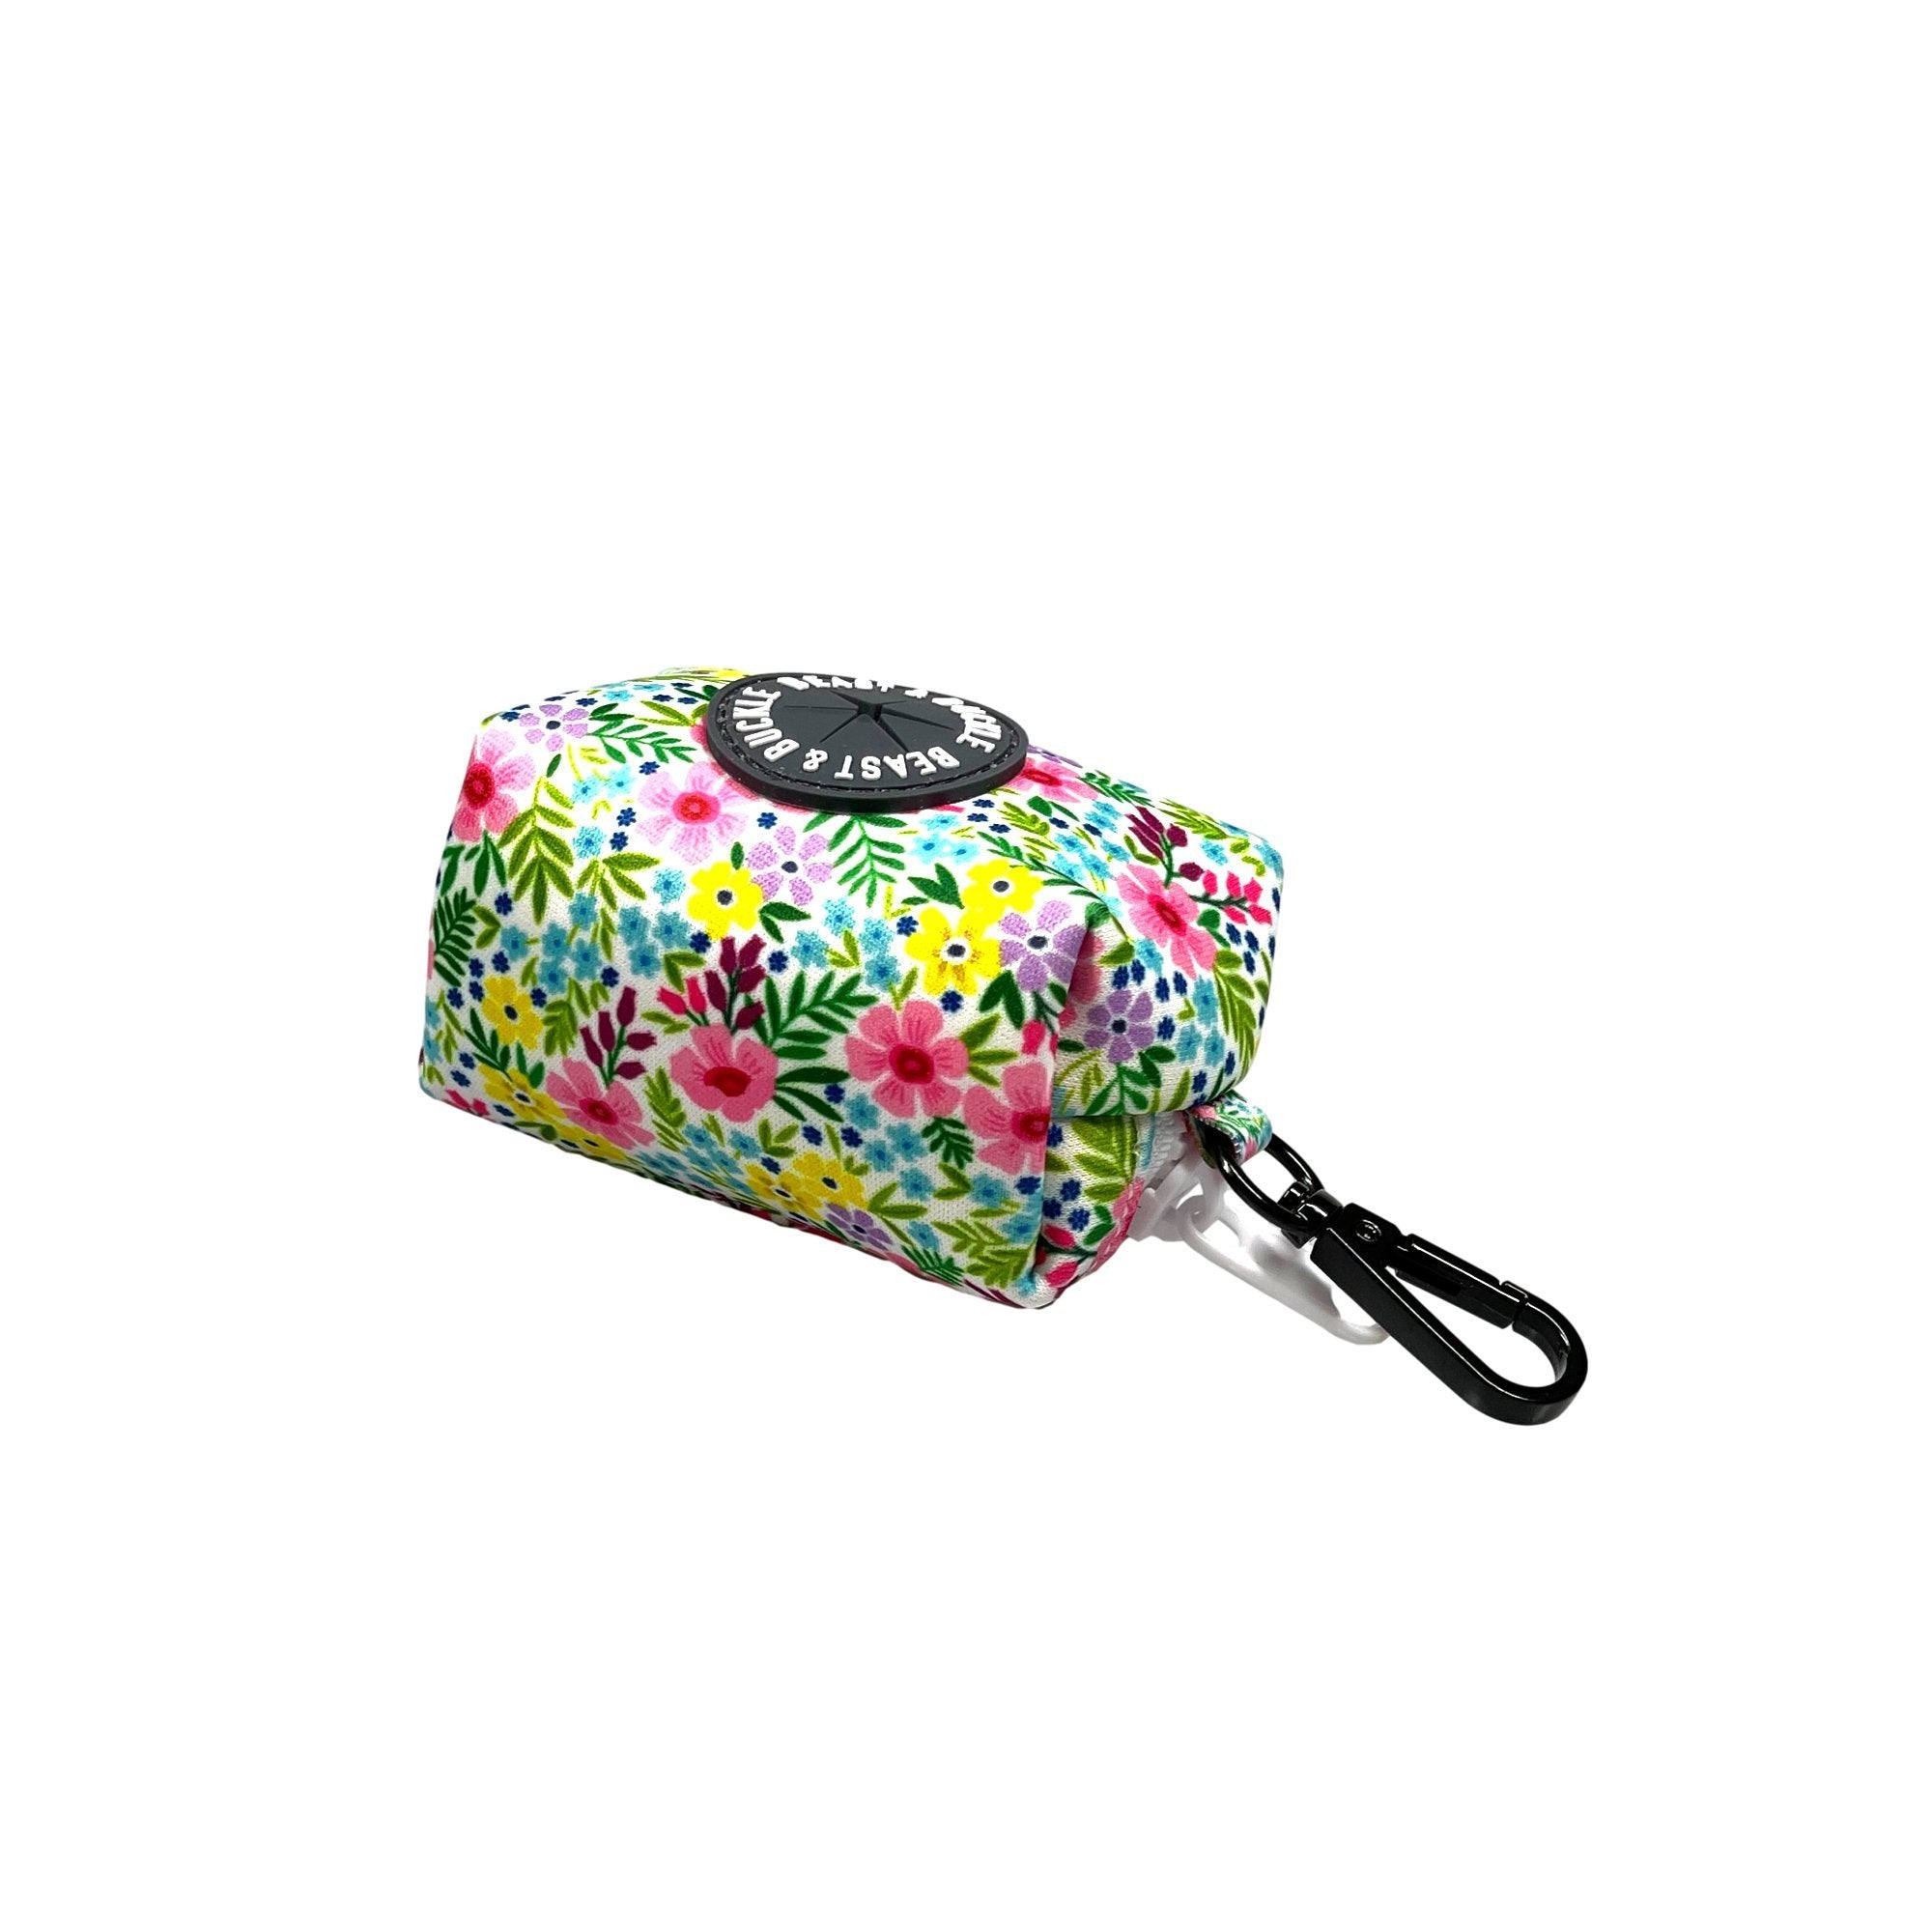 Floral Poop Bag Holder - Beast & Buckle